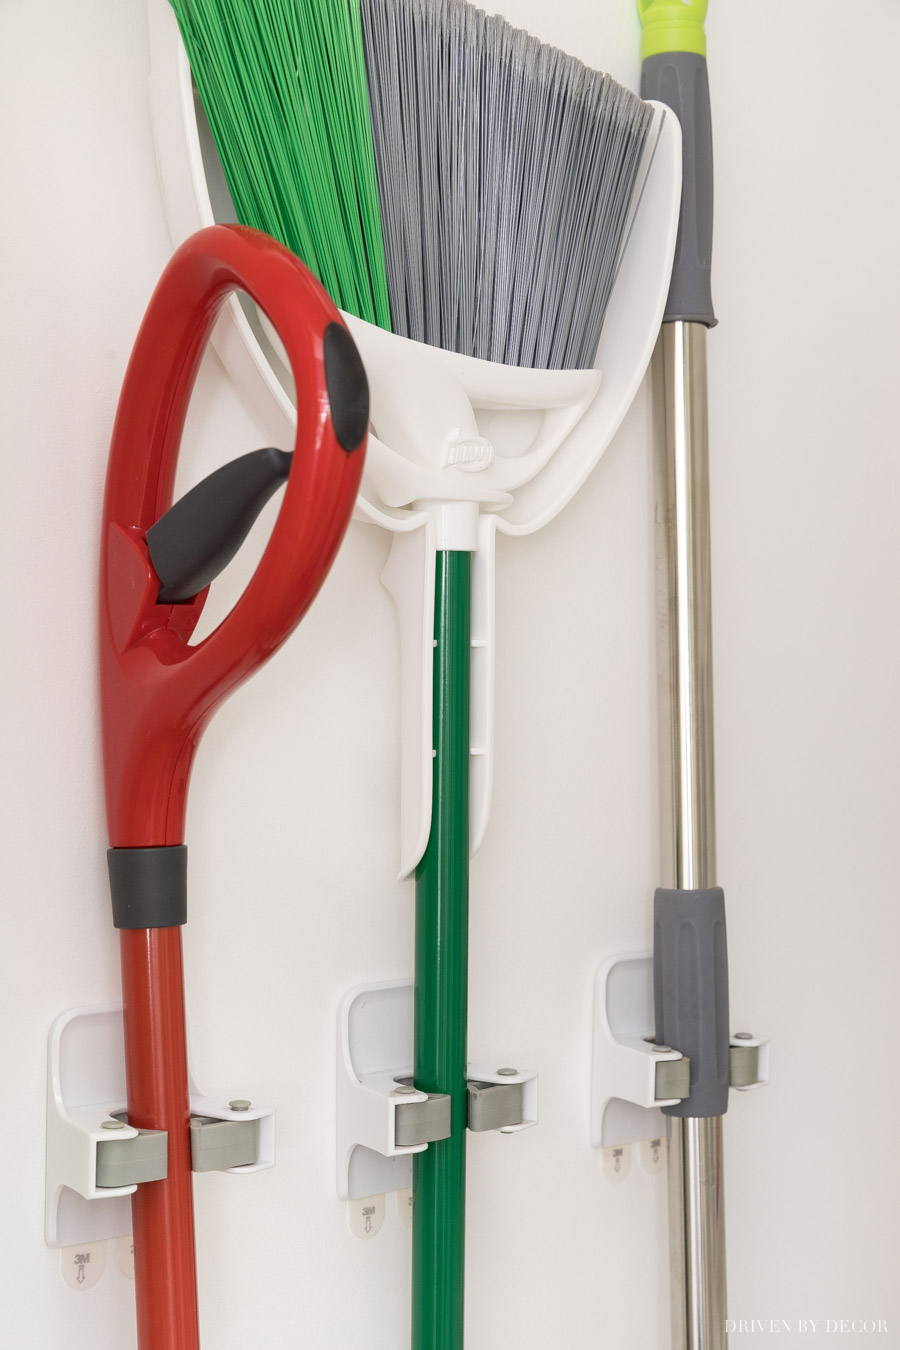 These gripper hooks are perfect for hanging brooms and mops where you want them in the closet!